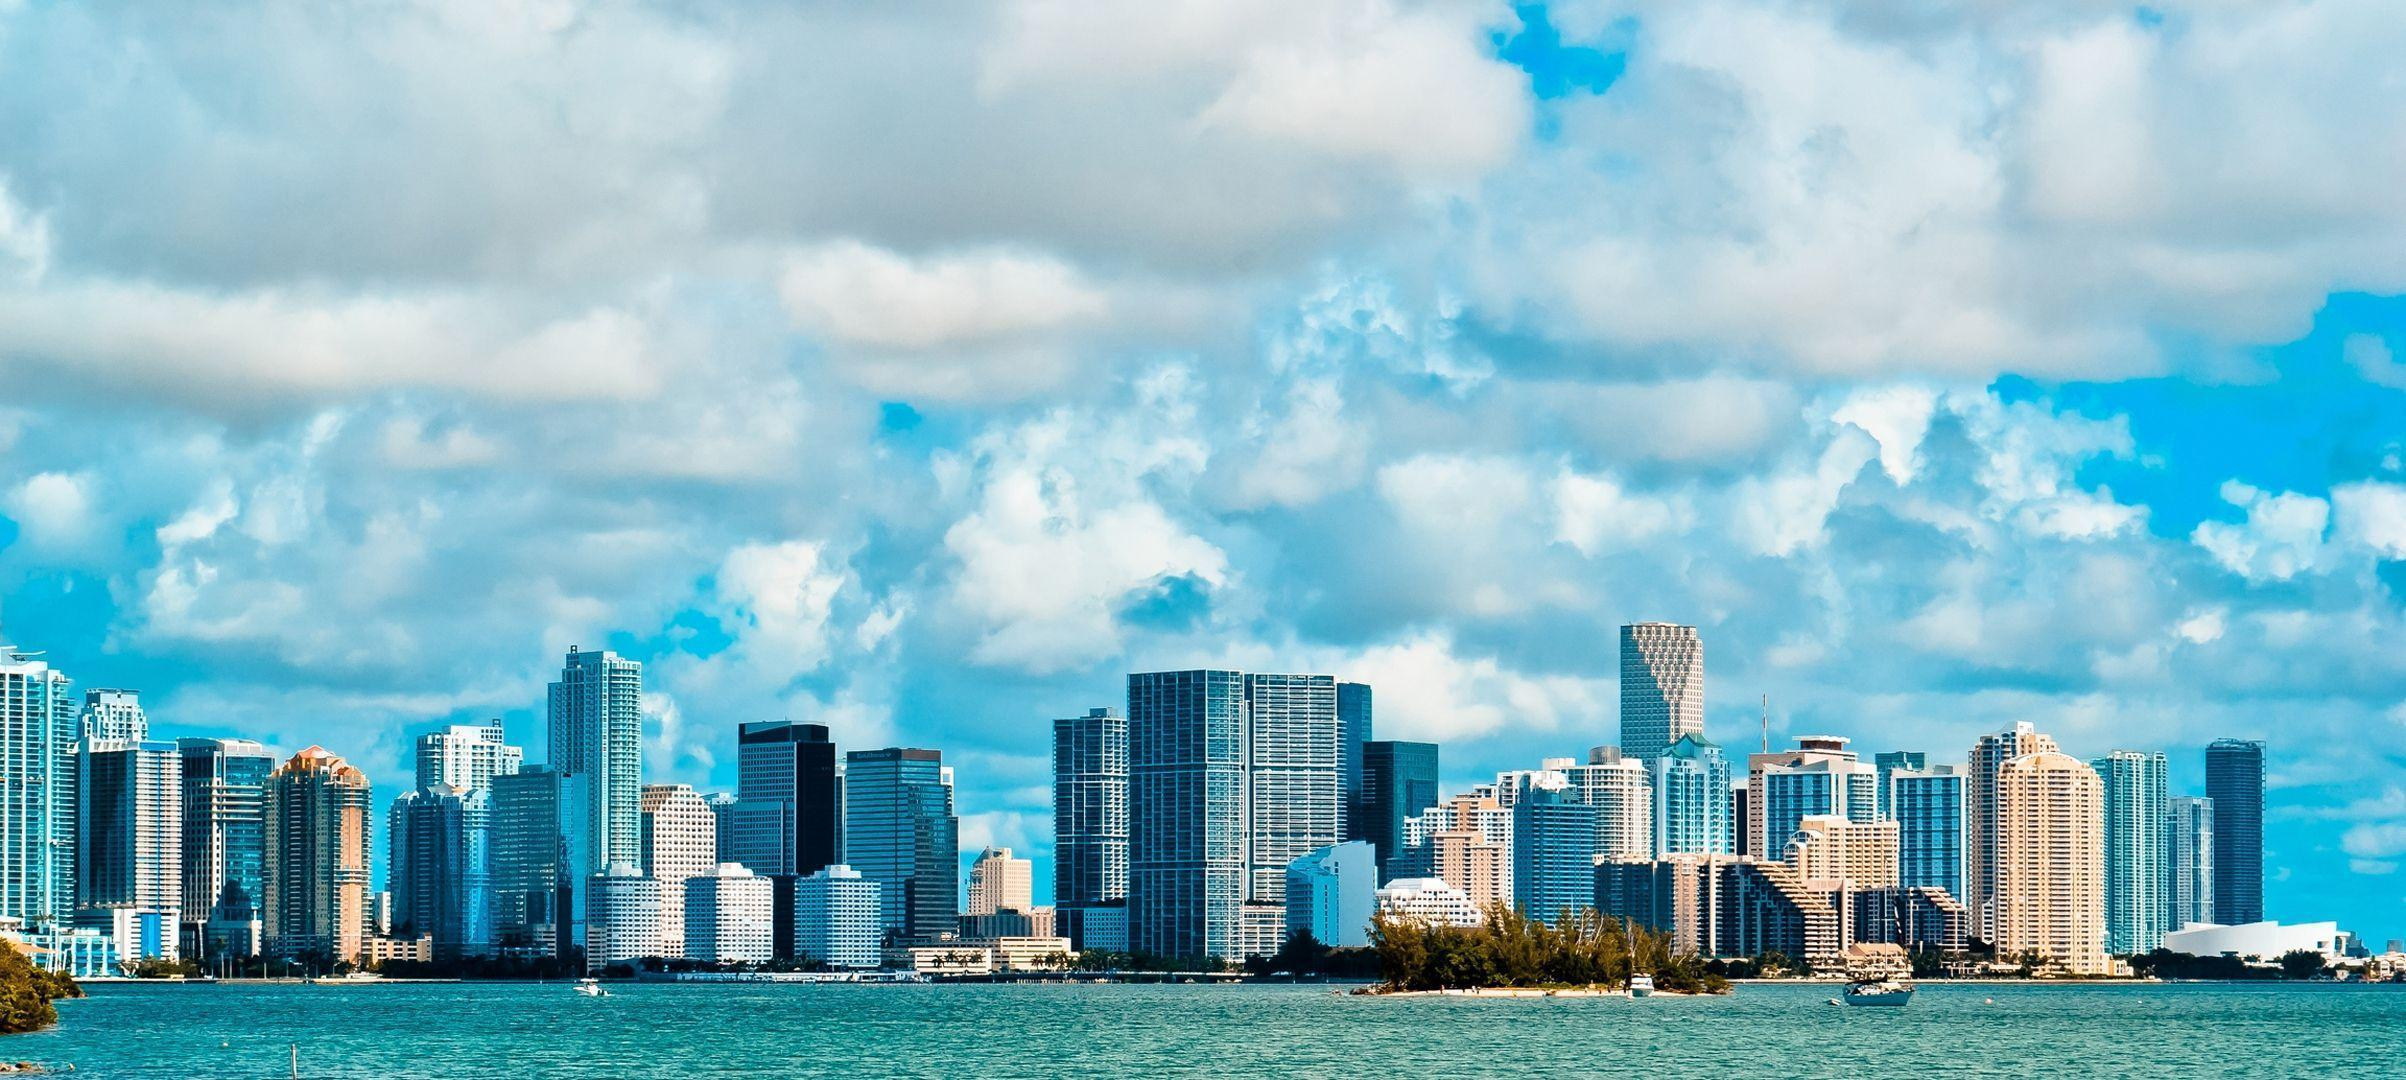 Download Wallpapers Miami, Usa, America, Miami beach, Sky, Clouds